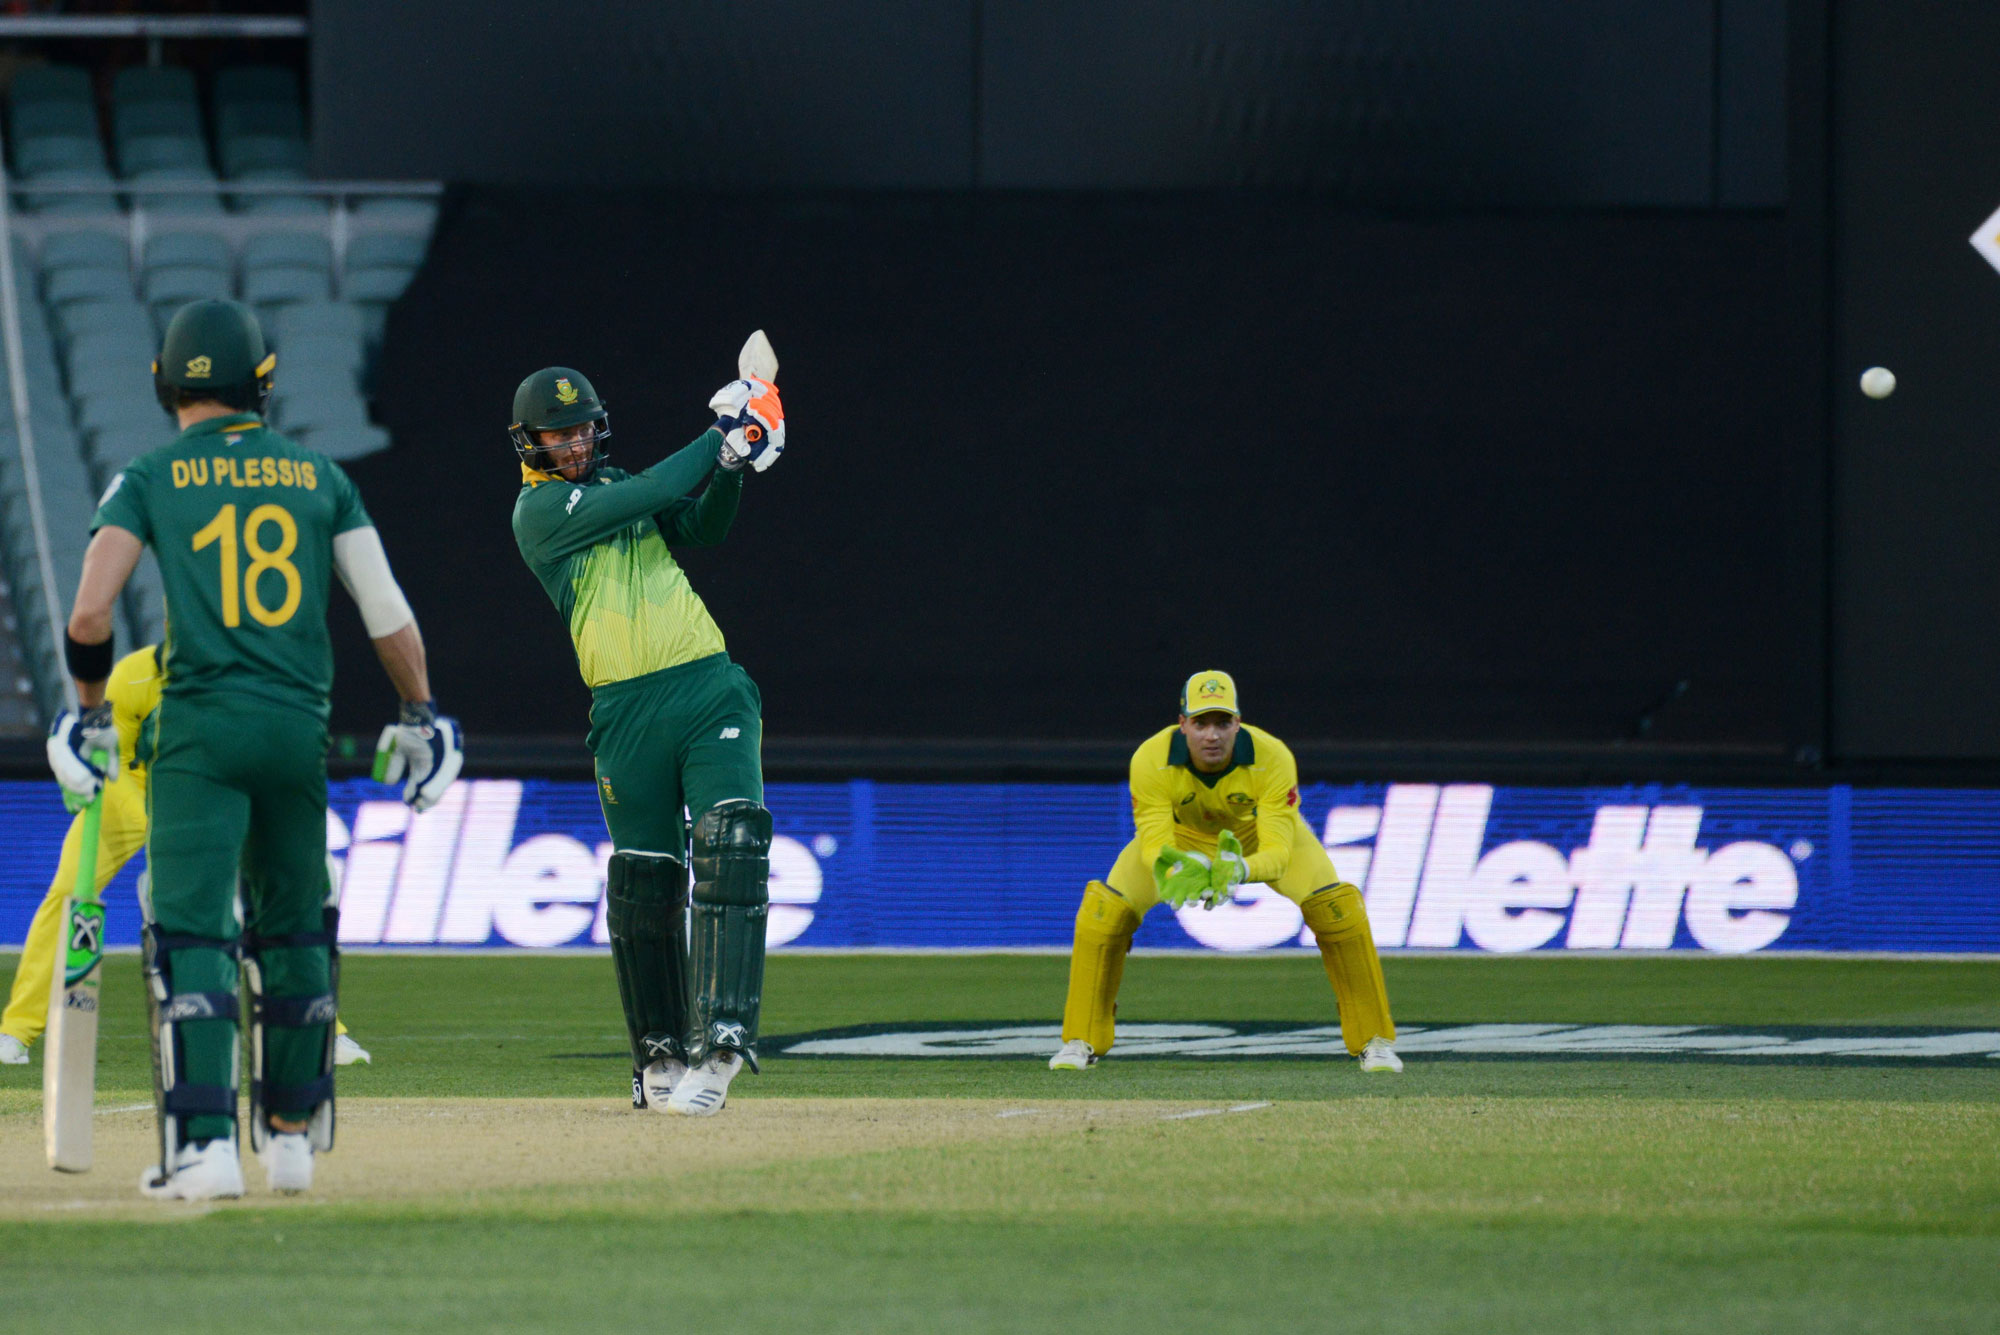 Australia vs South Africa - Second ODI in Adelaide